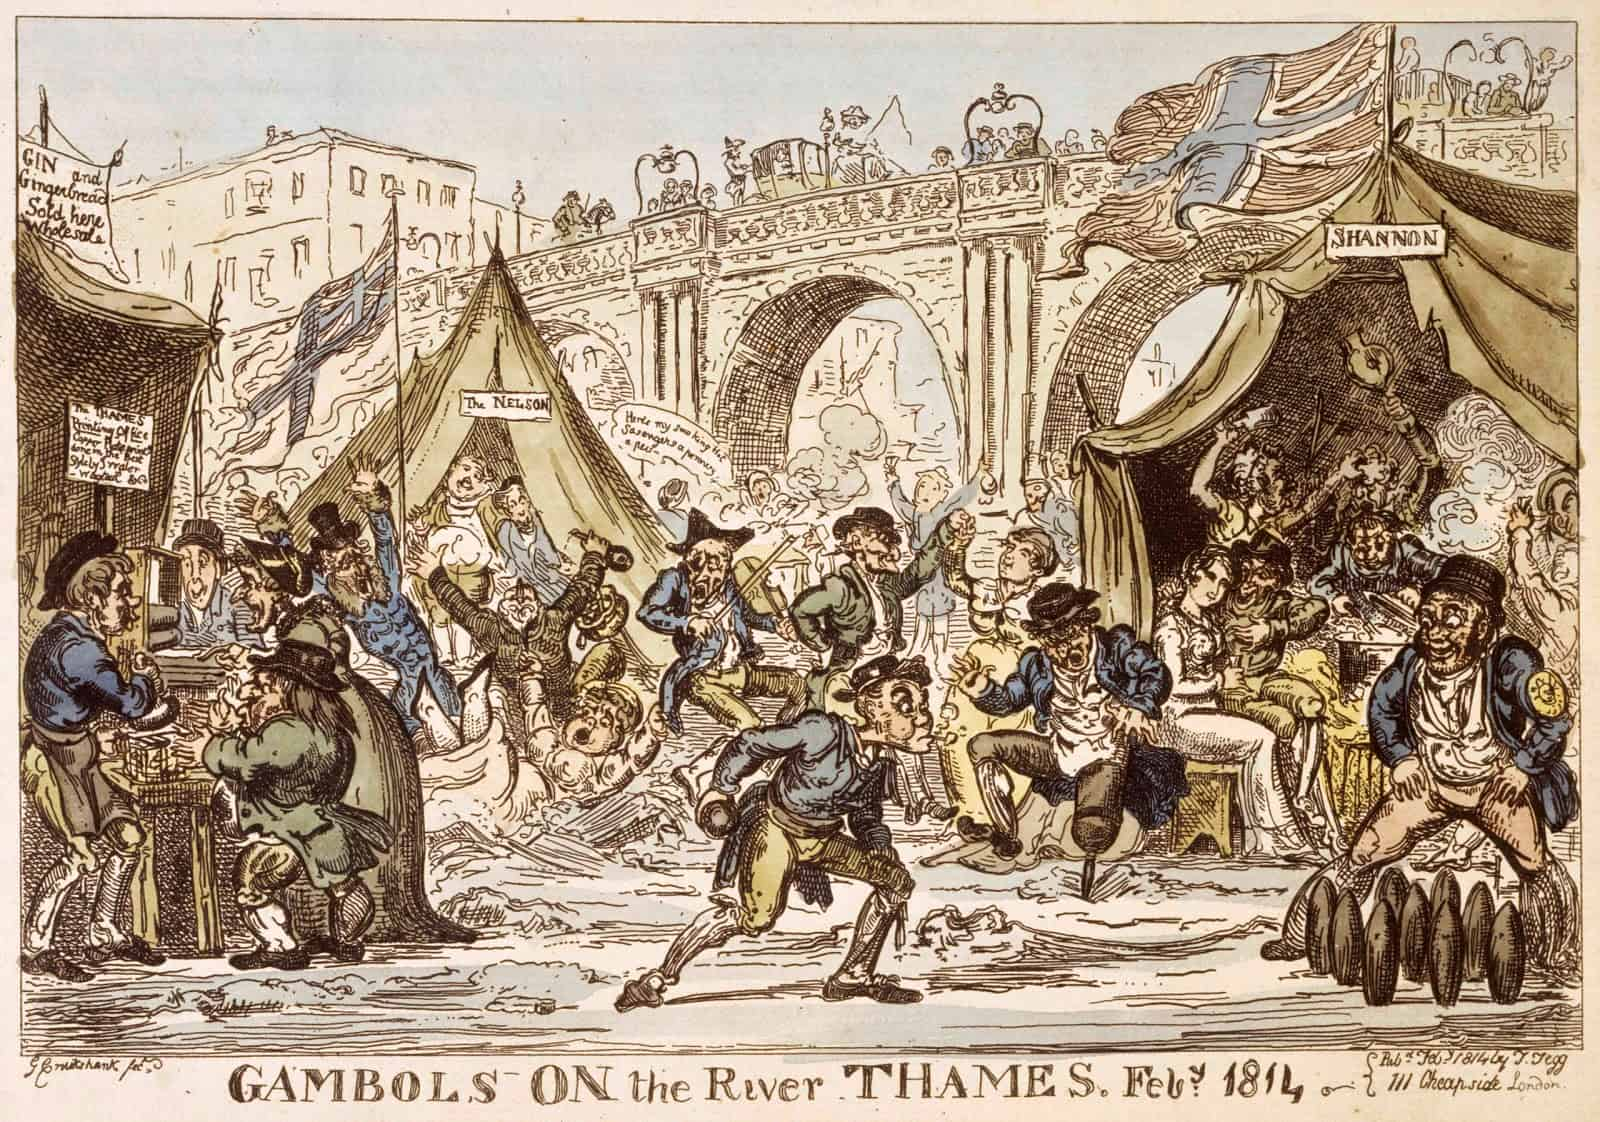 Gambols-on-the-River-Thames-1814-©-Museum-of-London